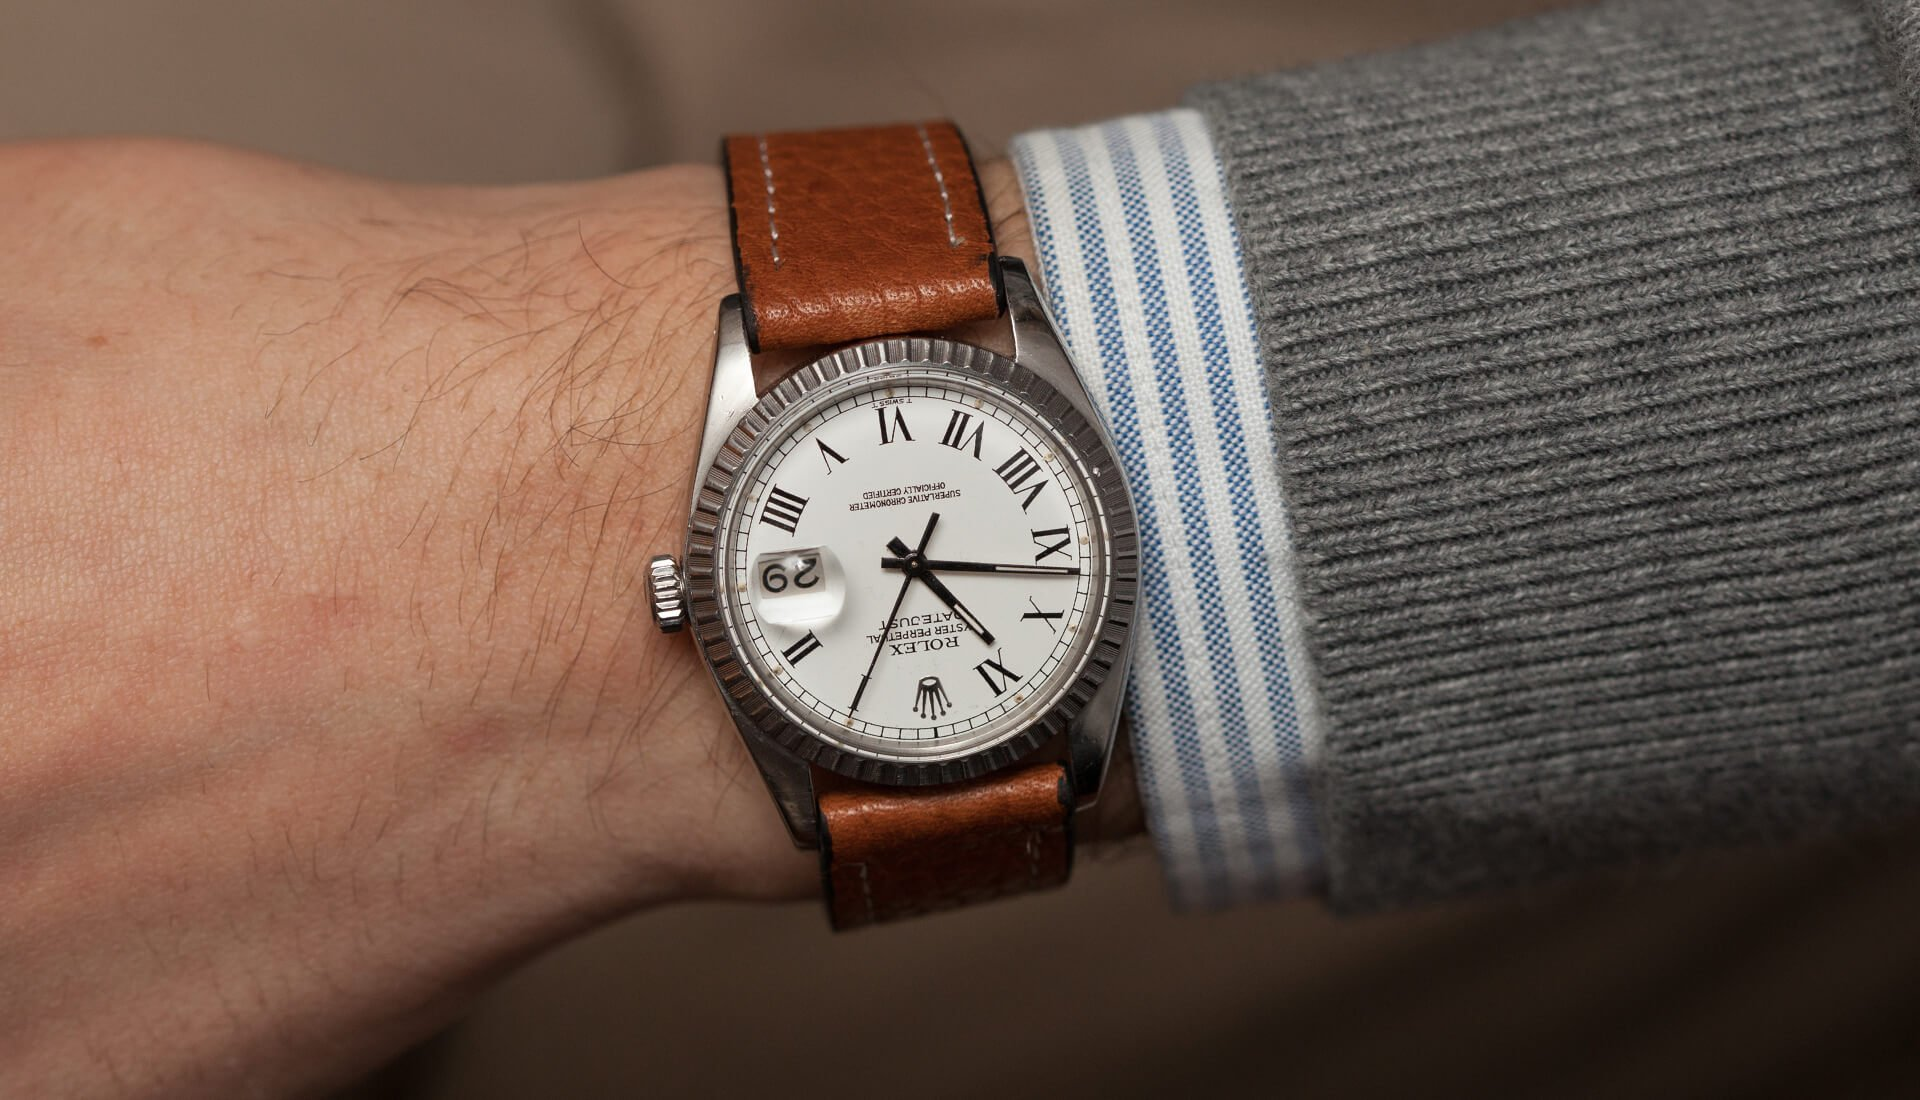 Watch 101: Is the Vintage Rolex Datejust the Perfect Watch?